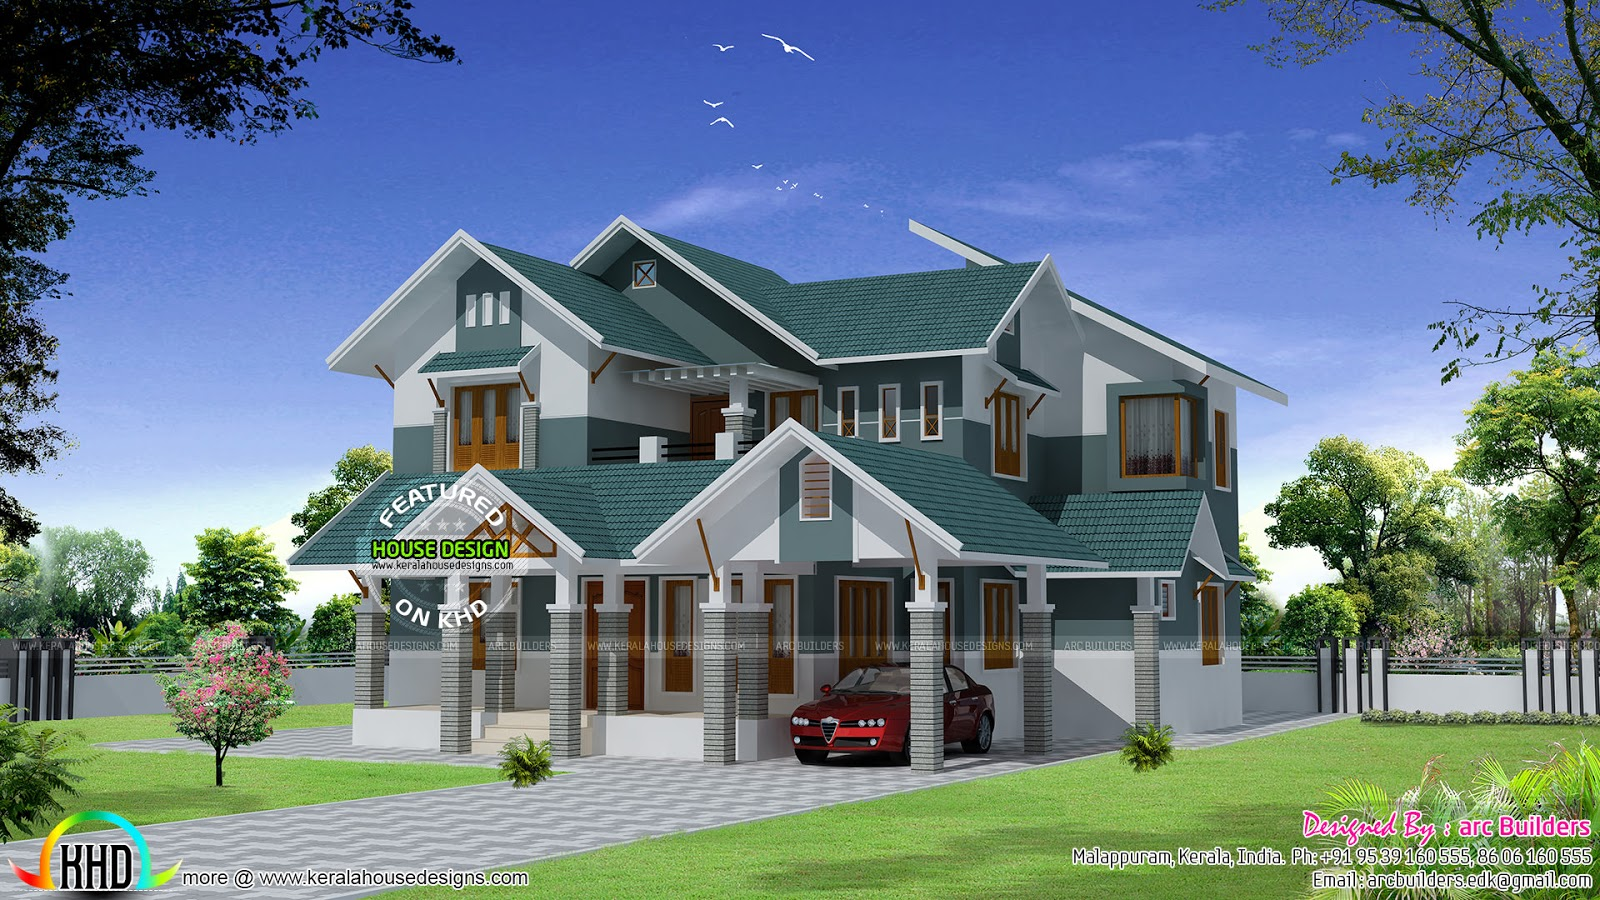 Sloping roof modern home design kerala home design and for Home plans designs